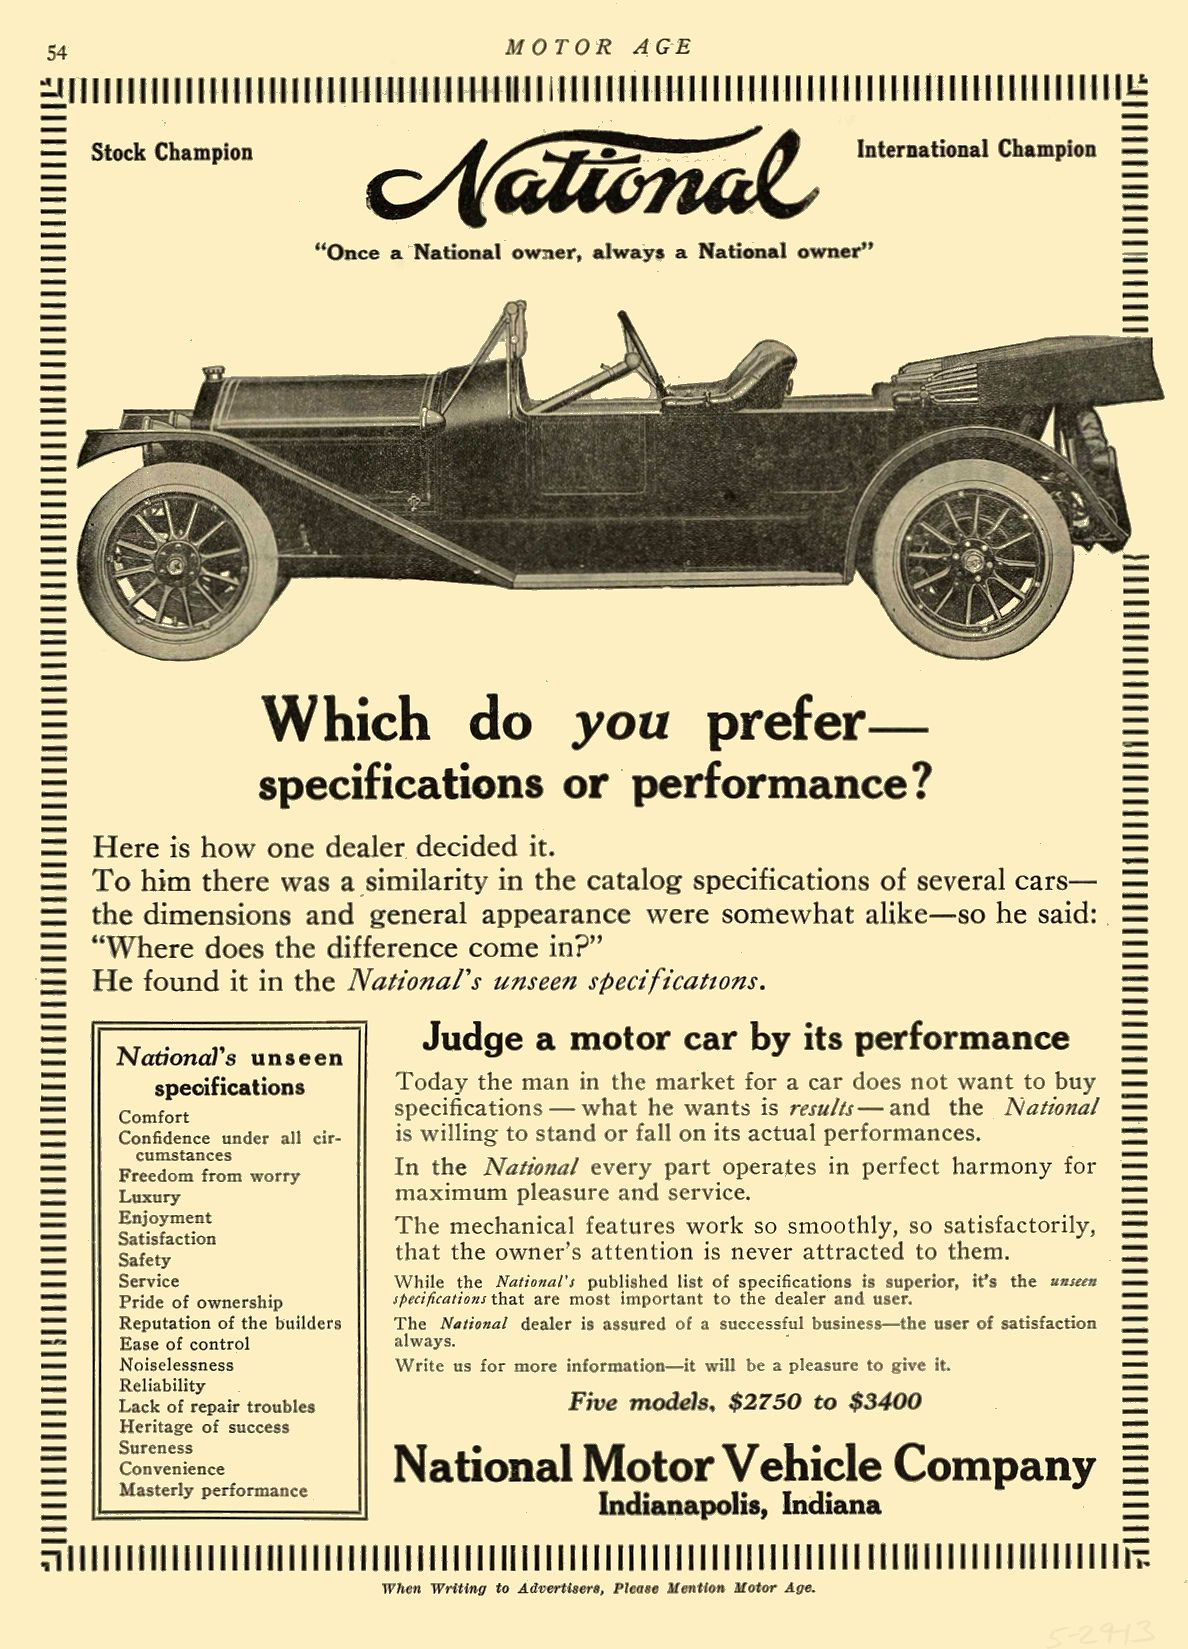 1913 5 29 NATIONAL National Which do you prefer— Specifications or performance? National Motor Vehicle Company Indianapolis, IND MOTOR AGE May 29, 1913 8.5″x11.75″ page 54